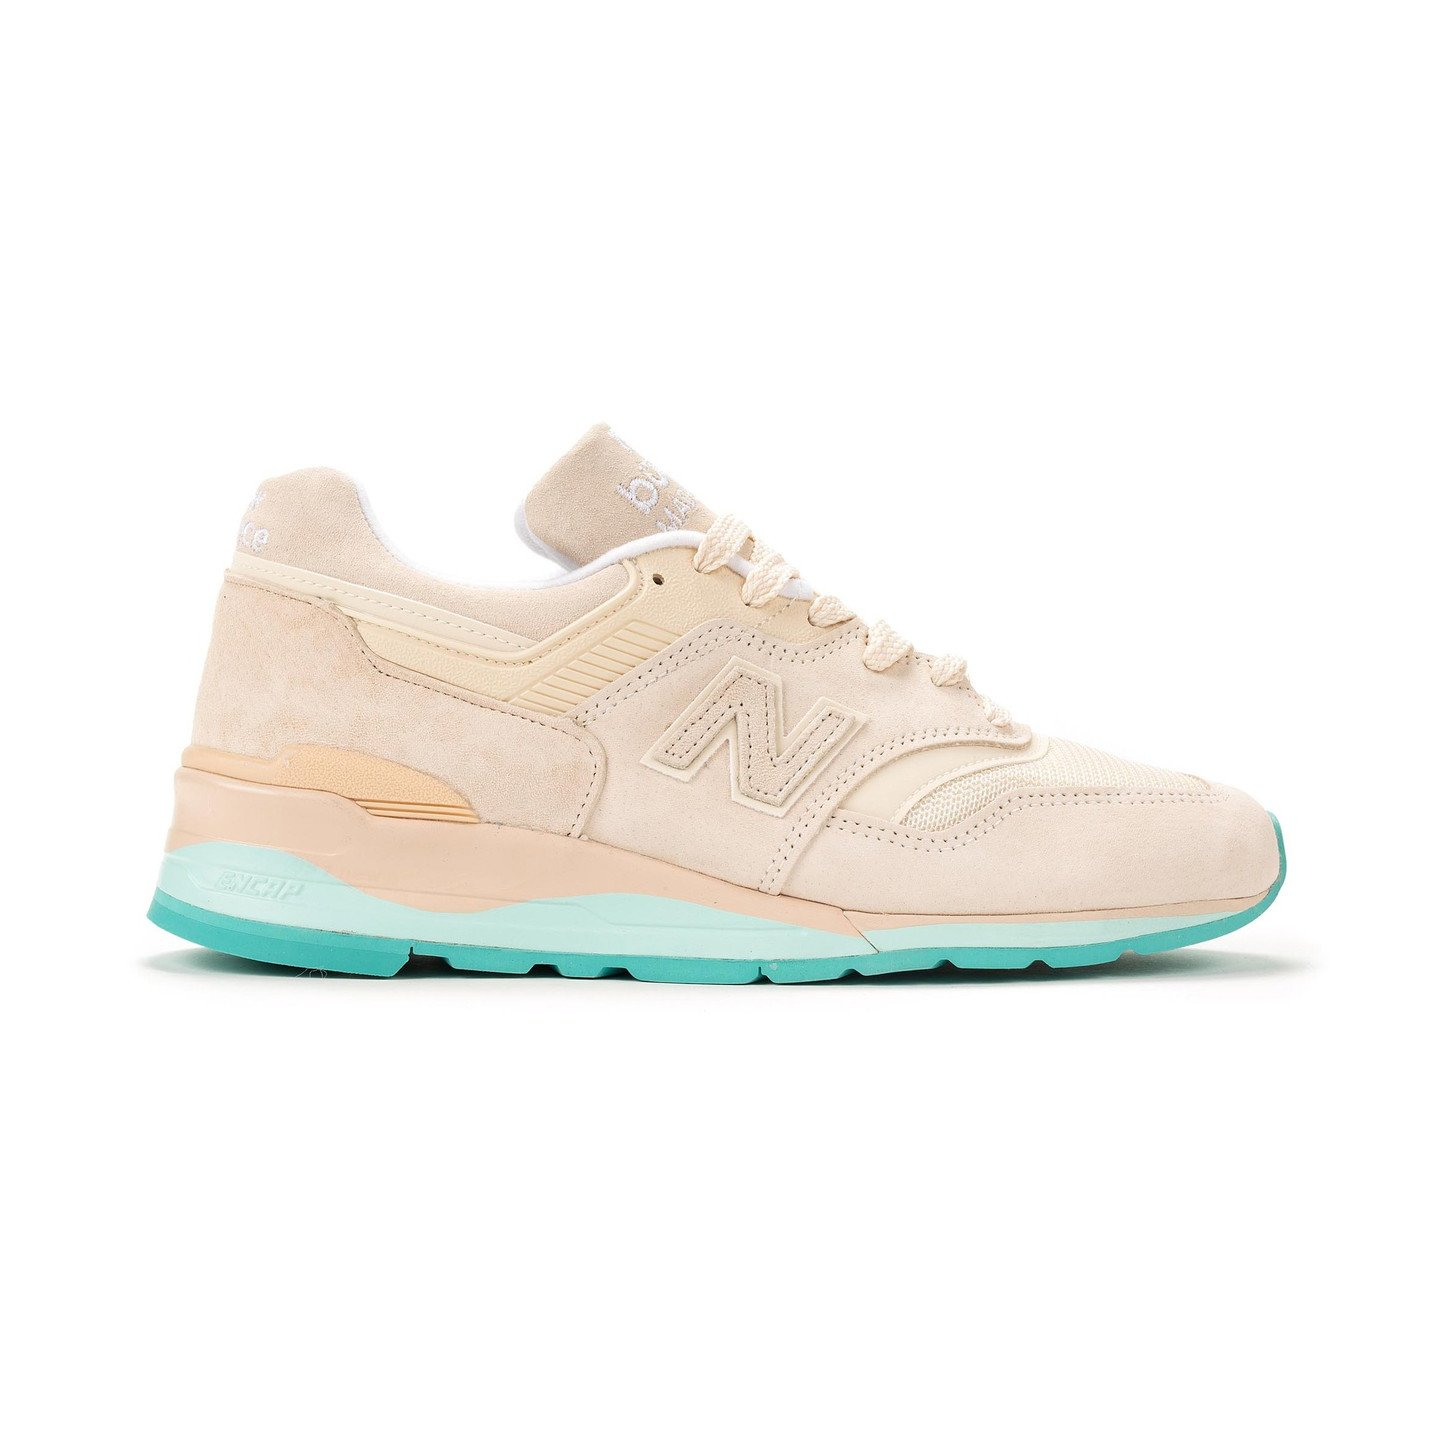 New Balance M997 - Made in USA Light Bone / Aqua M997RSA